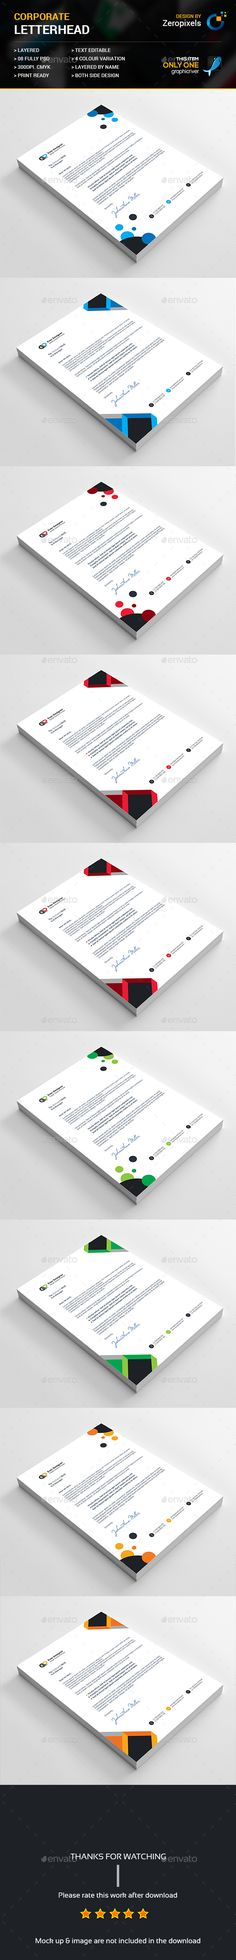 Letterhead Template PSD Bundle